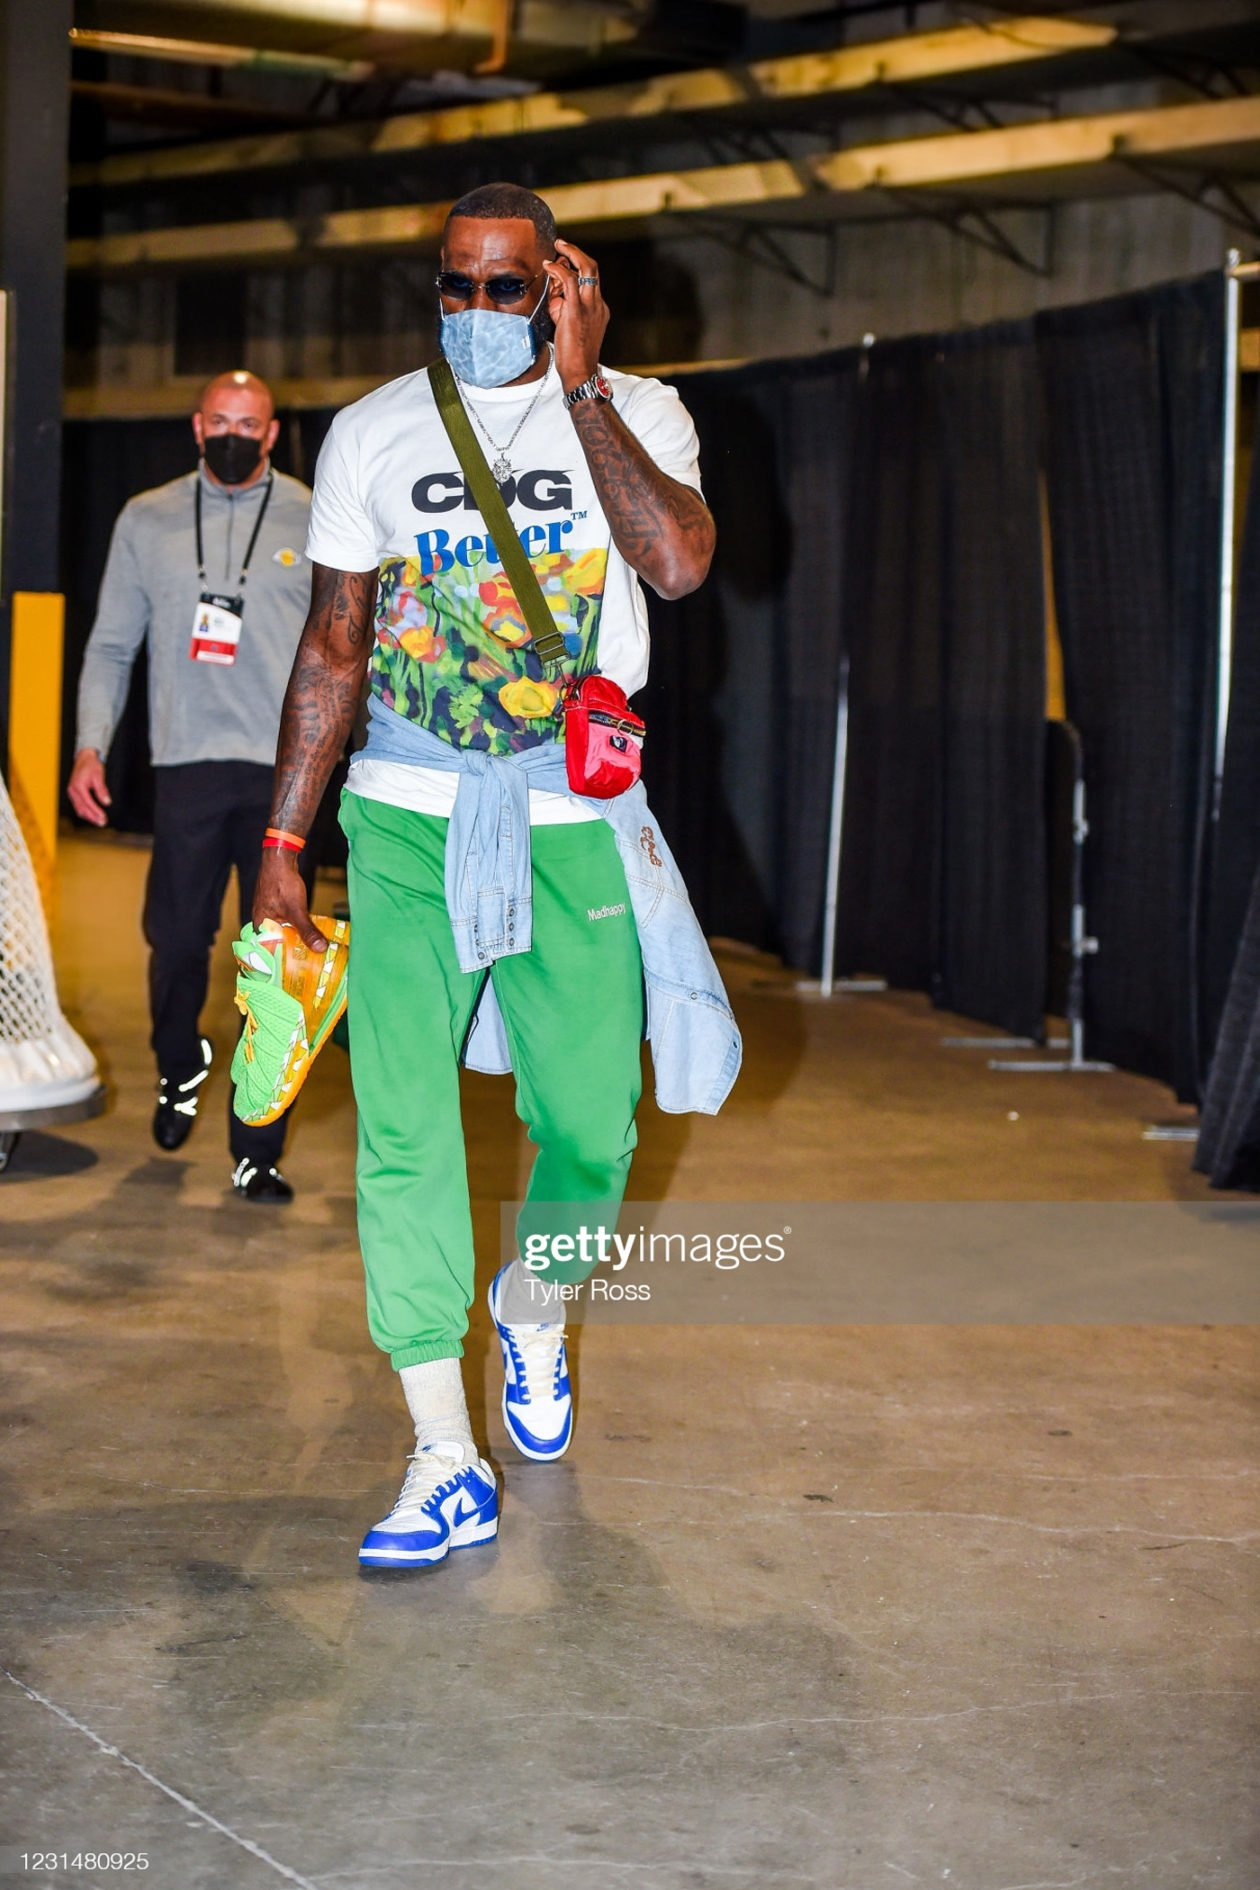 LeBron James & Rolex / Foto: Tyler Ross, Getty Images